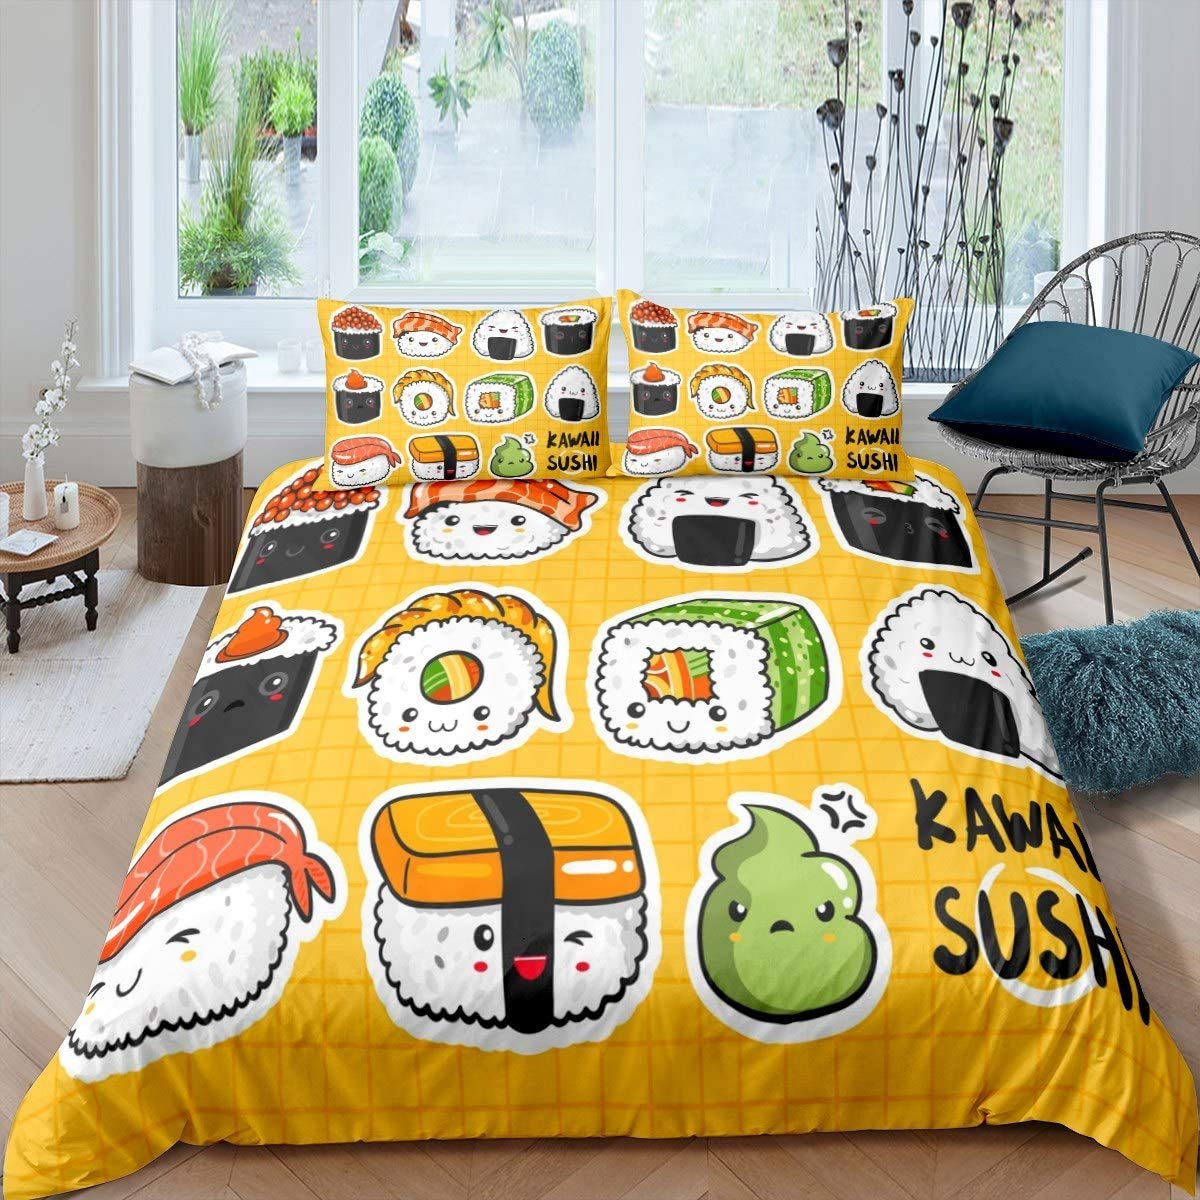 Kawaii Style Sushi Smiling and Yawning Expressions Kids Cartoon Concept Decorative 3 Piece Bedding Set with 2 Pillow Shams Ambesonne Sushi Duvet Cover Set Grey White Queen Size